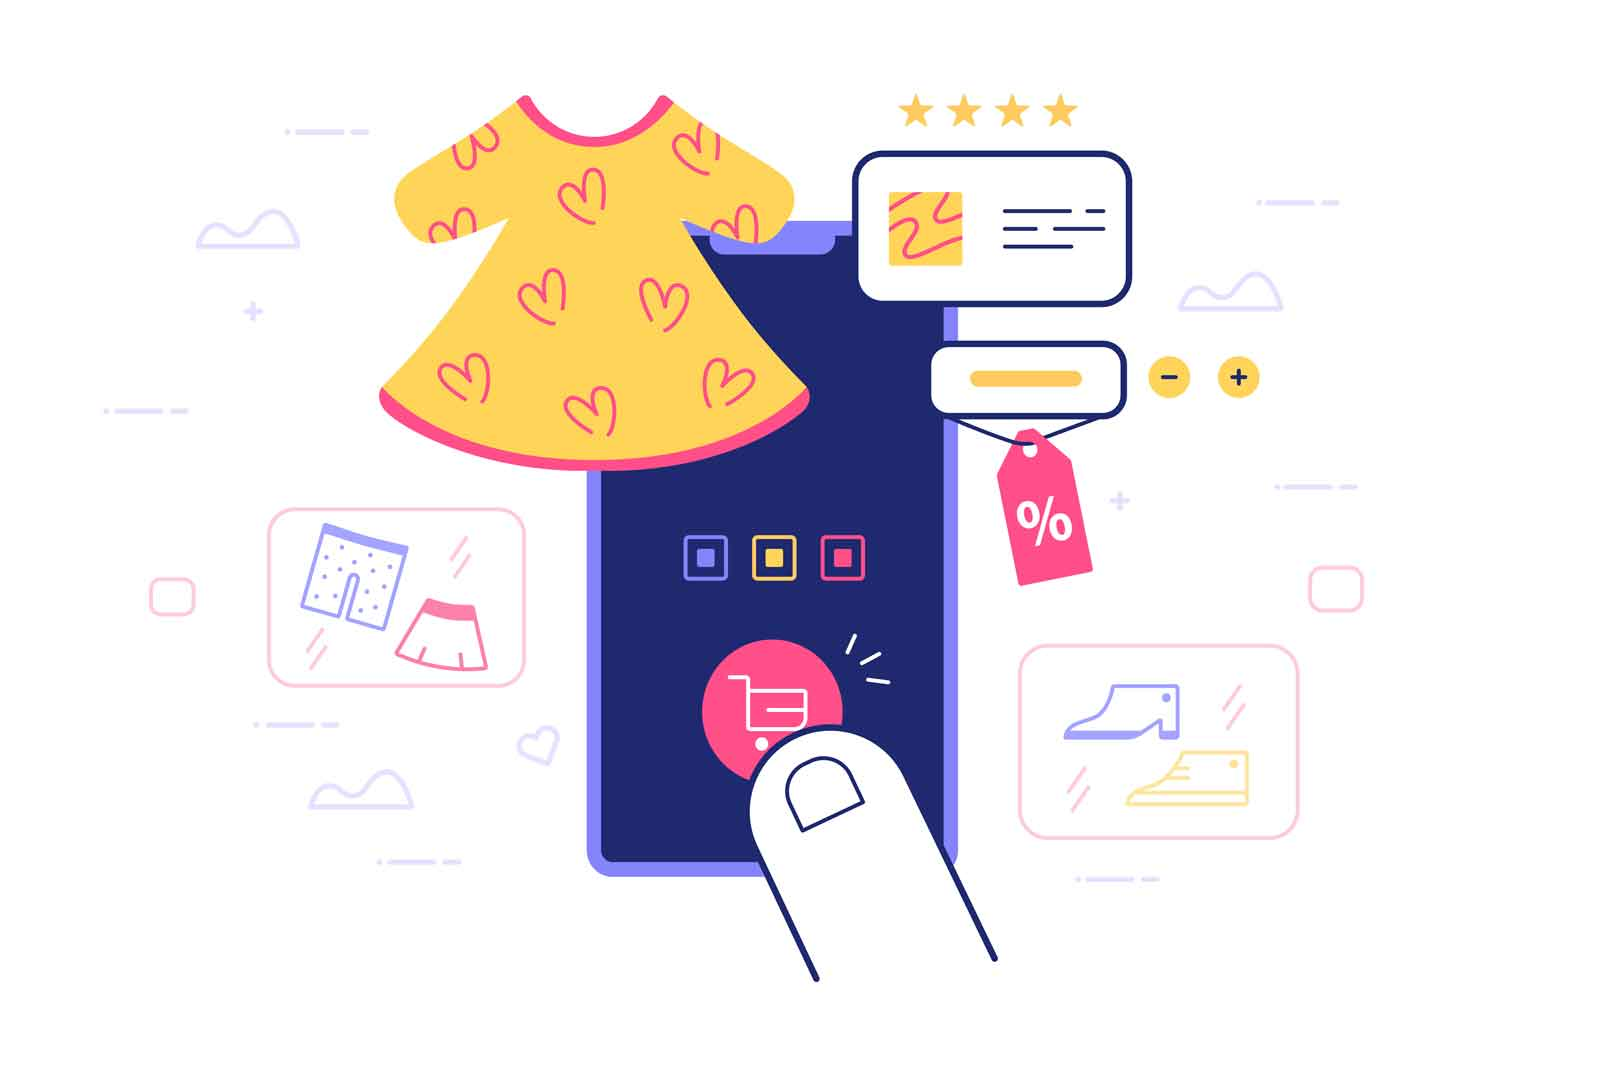 Online shopping via phone vector illustration. Tap on screen to choose clothes flat style. Shop from home using smartphone. Fashion concept. Isolated on white background